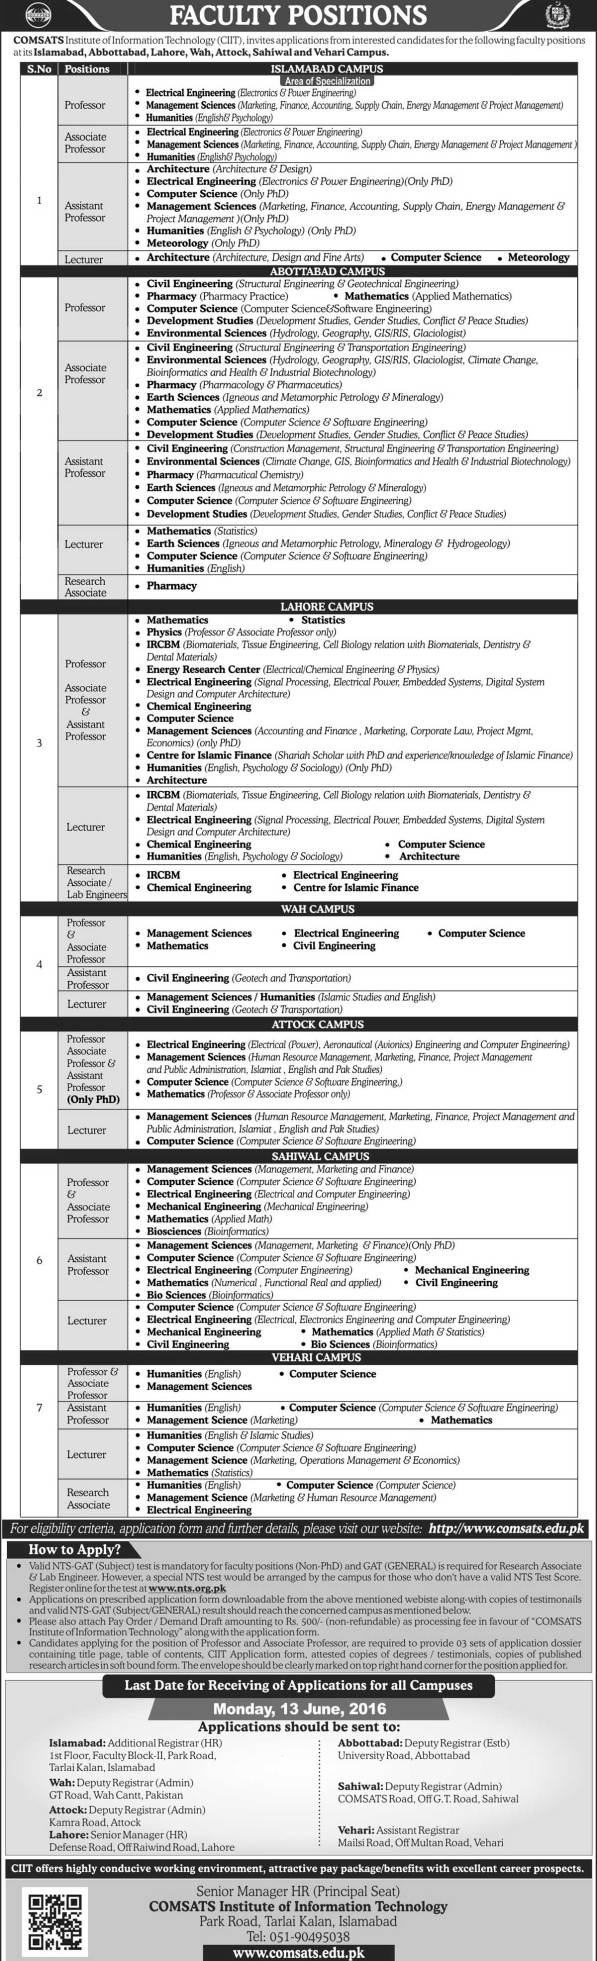 COMSATS Teaching Staff Faculty Jobs NTS Test 2016